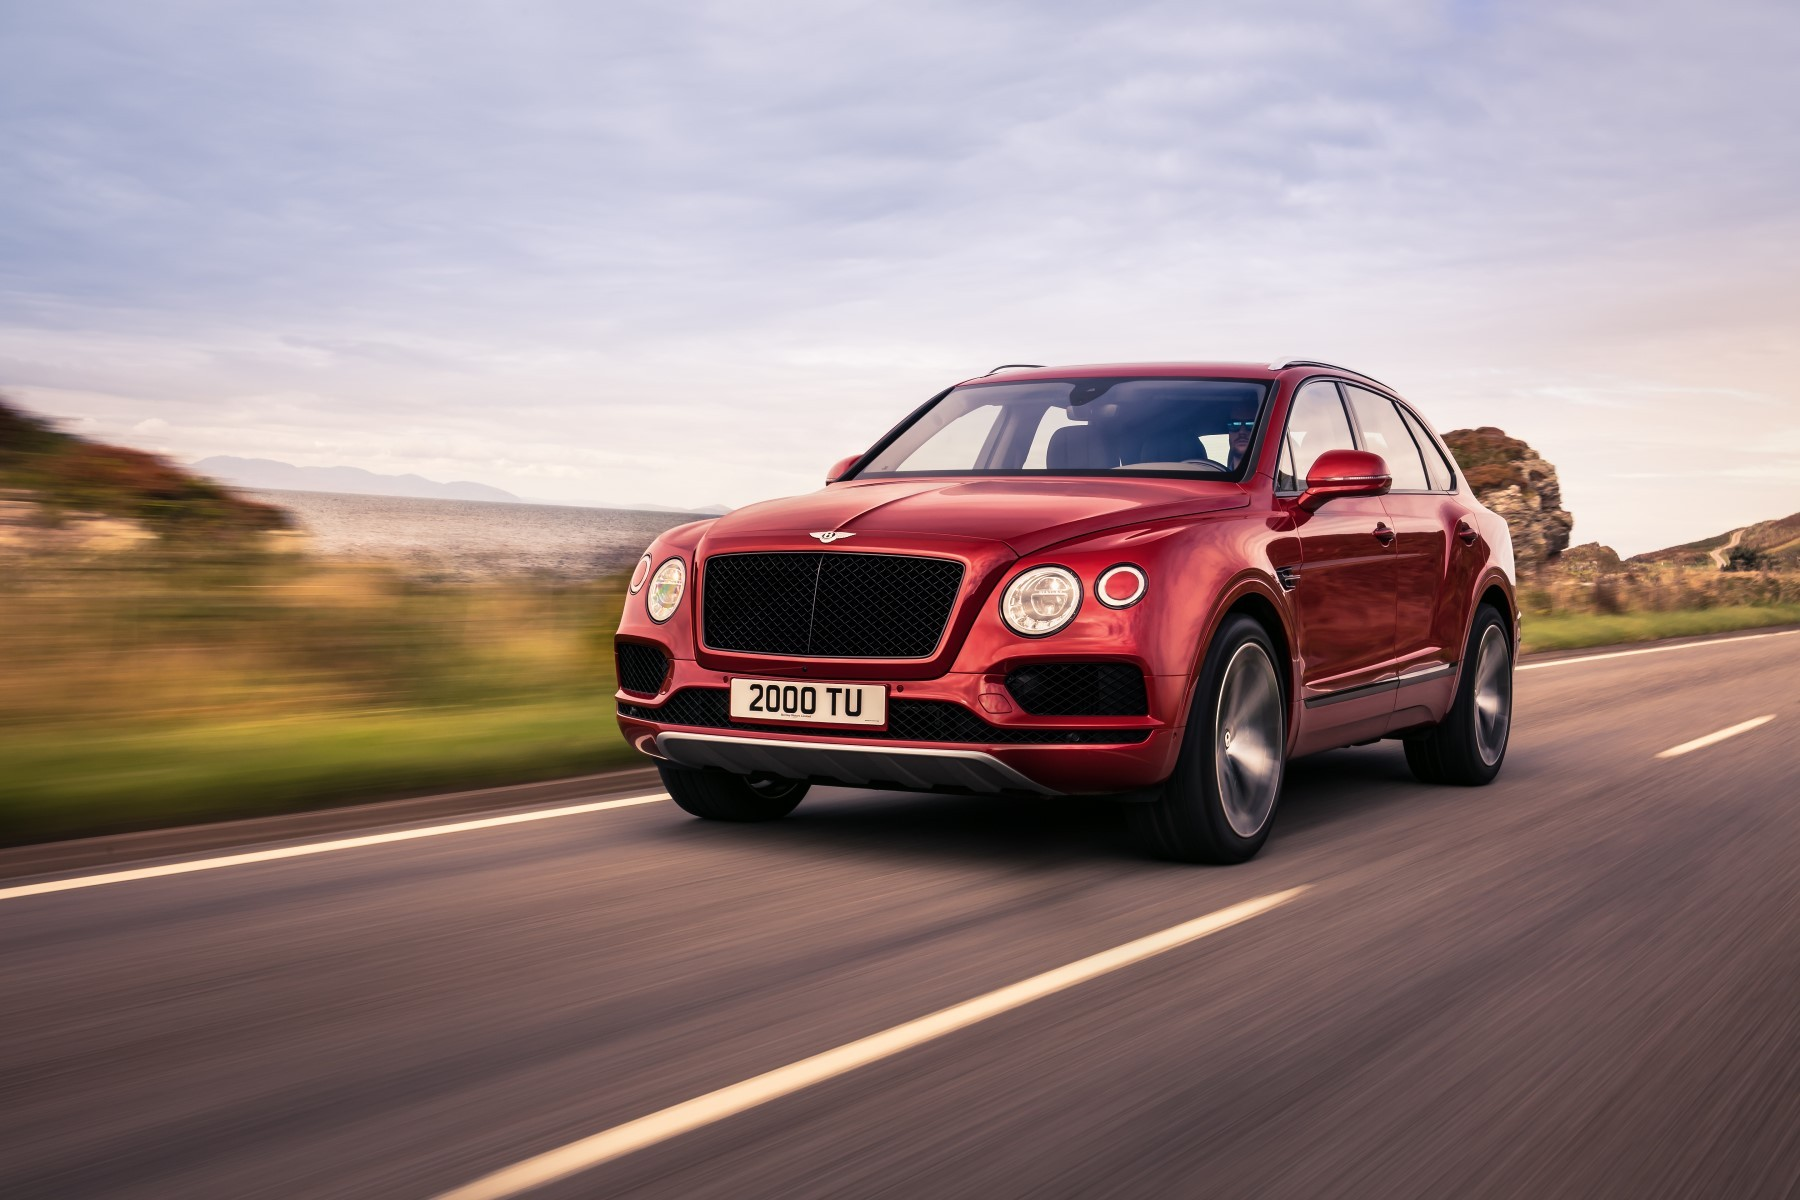 Nouvelle voiture d'angleterre la marque anglaise bentley Bentayga